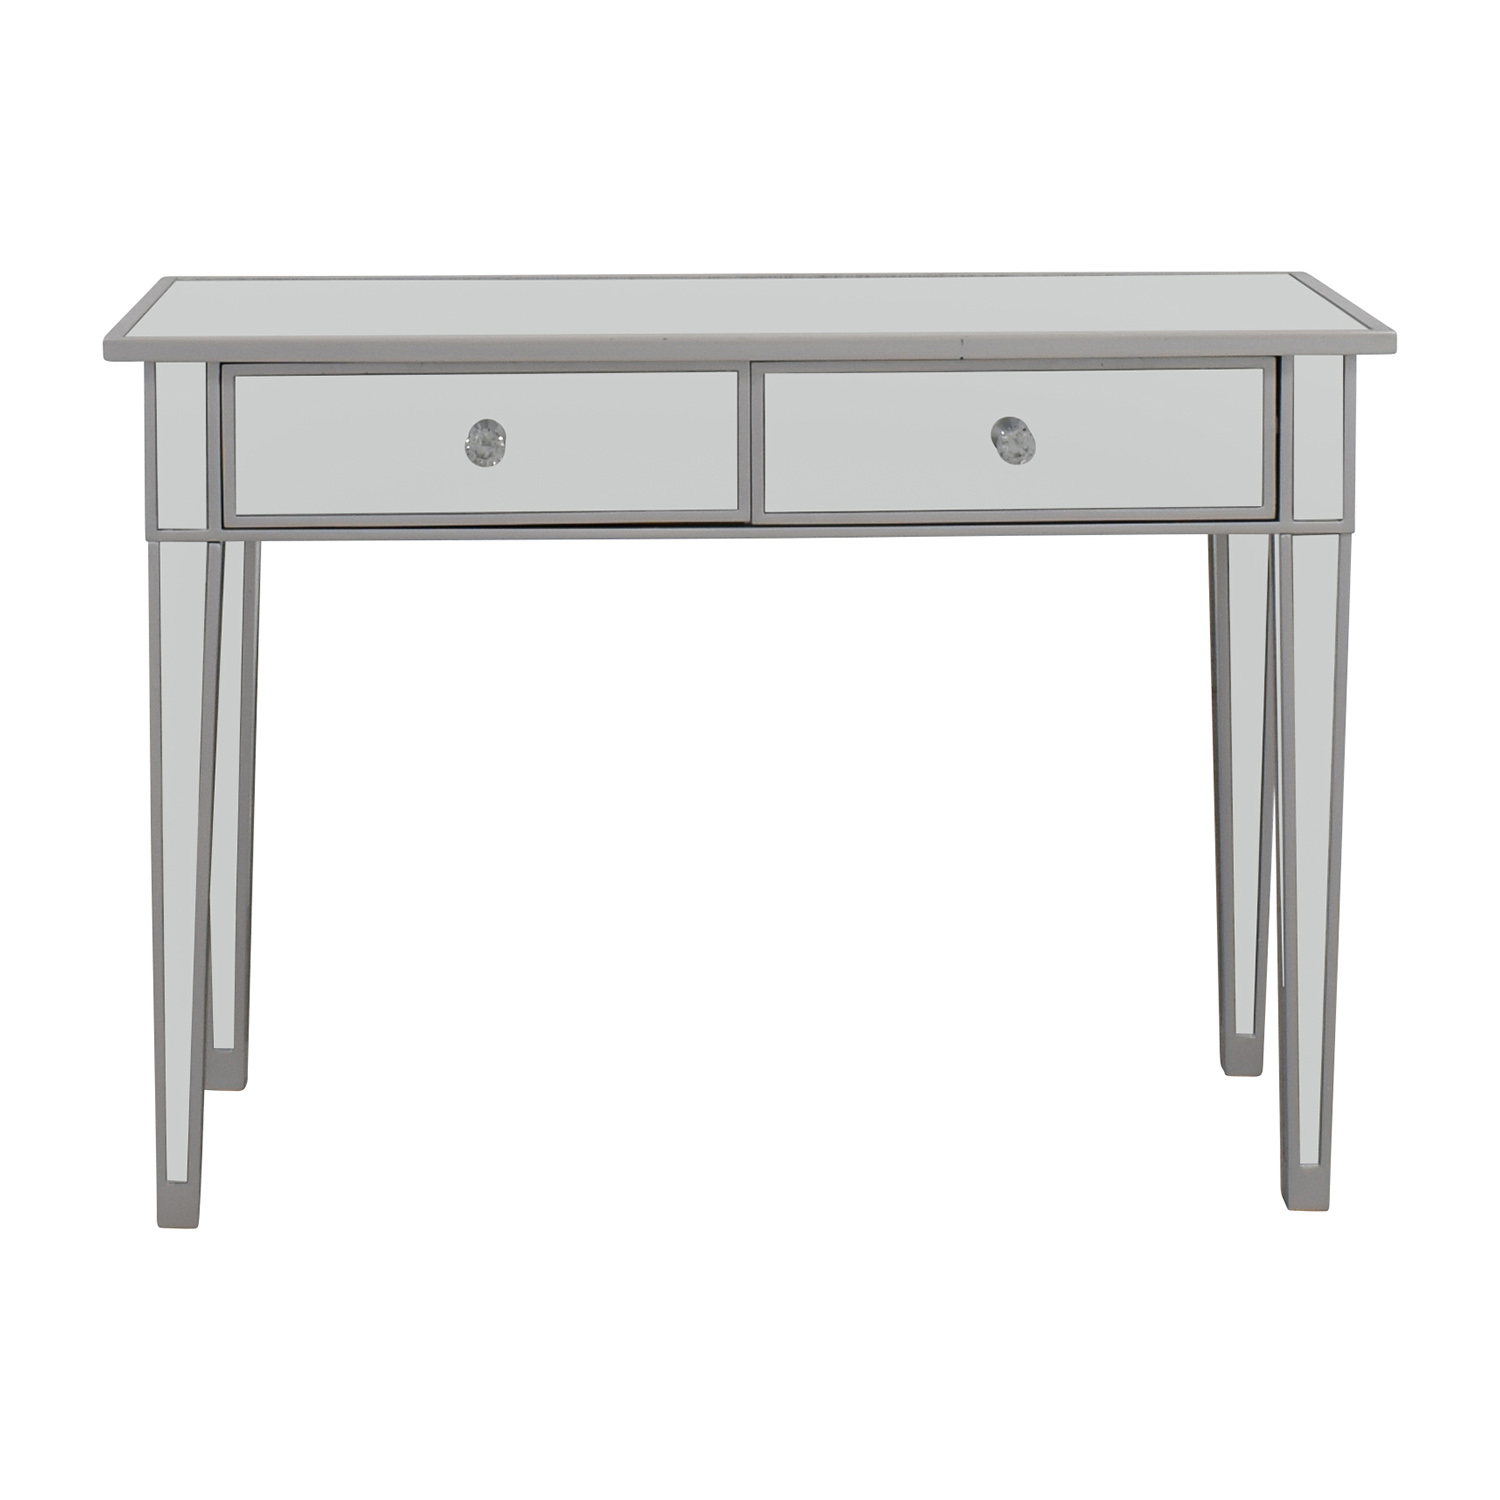 Wayfair Wayfair Two-Drawer Mirrored Vanity dimensions